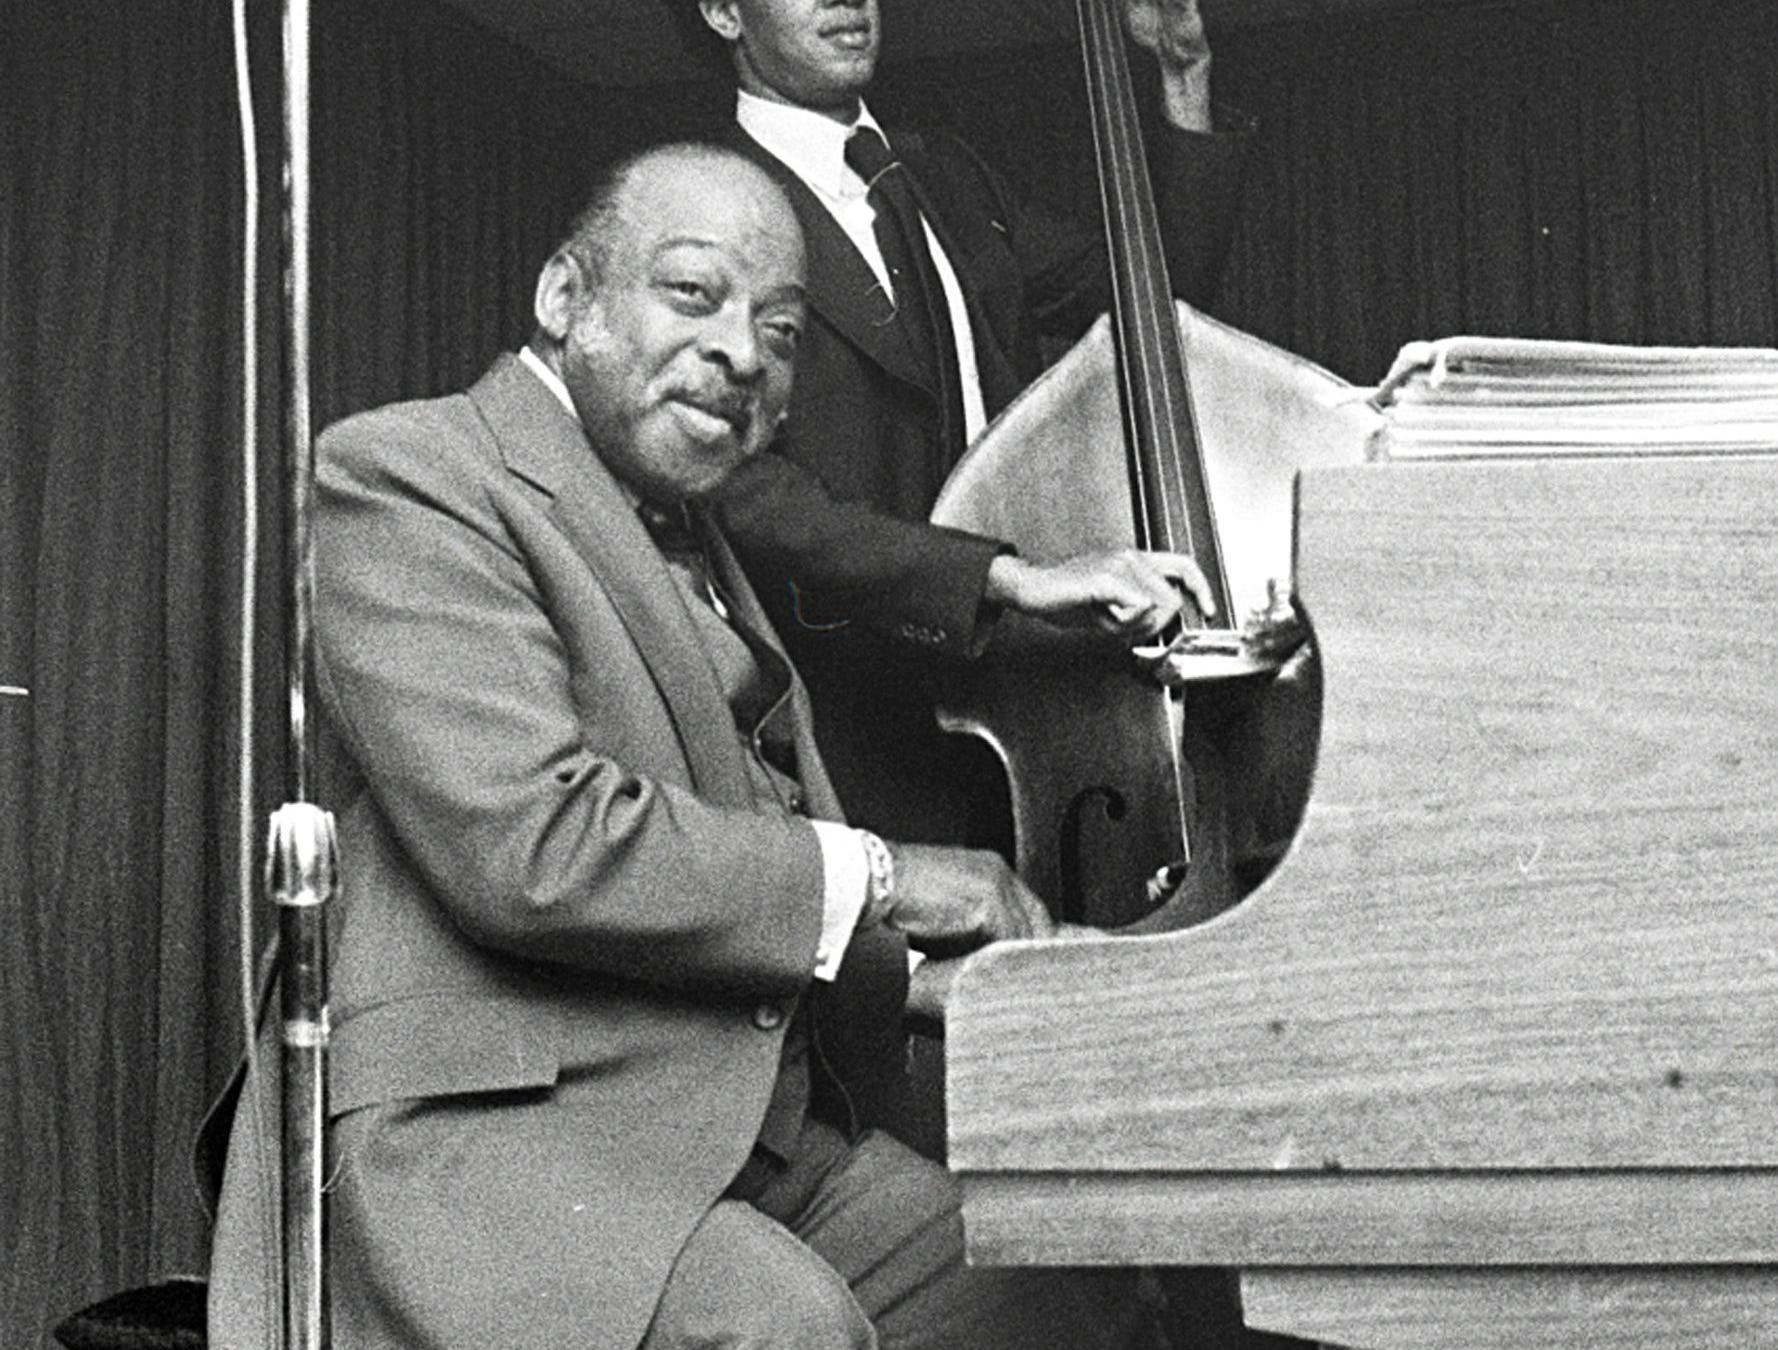 """Count Basie brought his special talents to Memphis on March 30, 1978, and musically lifted the spirits of a Memphis audience as he has done for audiences all over the world for the last 40 years. At the age of 73, he still has that special something that spells """"great"""" and cries for more. He was a tough act to follow for Billy Eckstine, the other half of the two-hour show at the Rainbow Room of the Hilton Inn."""